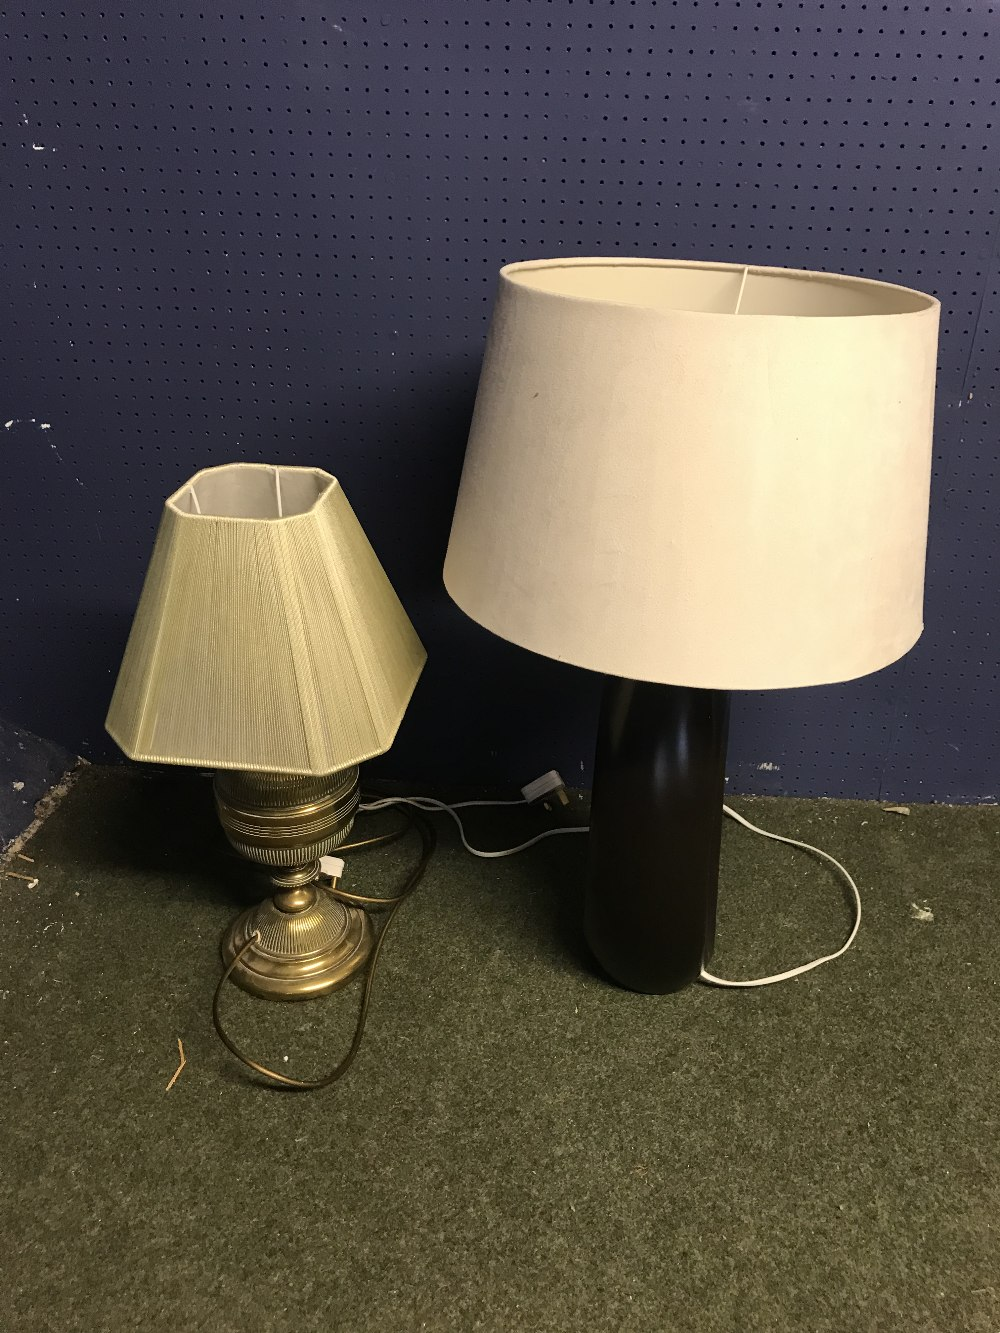 Lot 45 - 4 Modern lamps & shades & converted oil lamp with shades